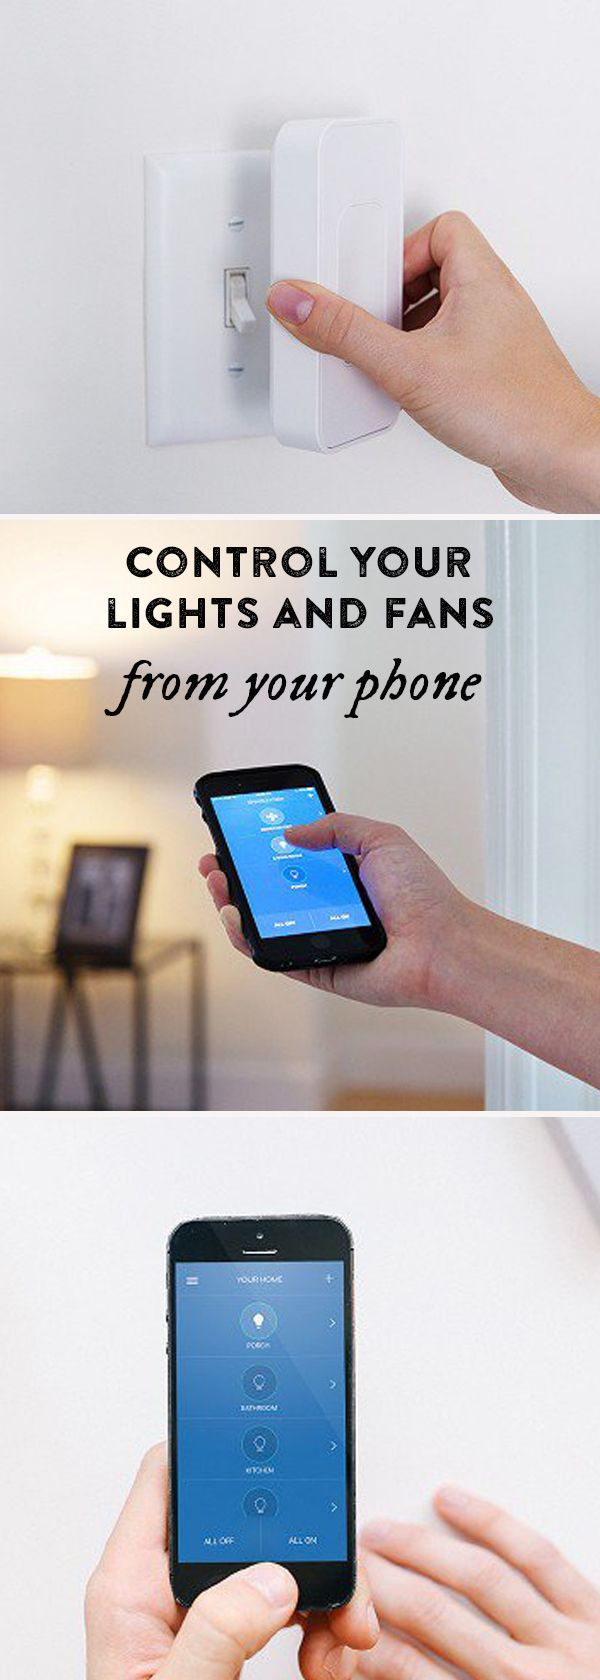 Get app-controlled lights and fans without having to change your light bulbs or install anything difficult.